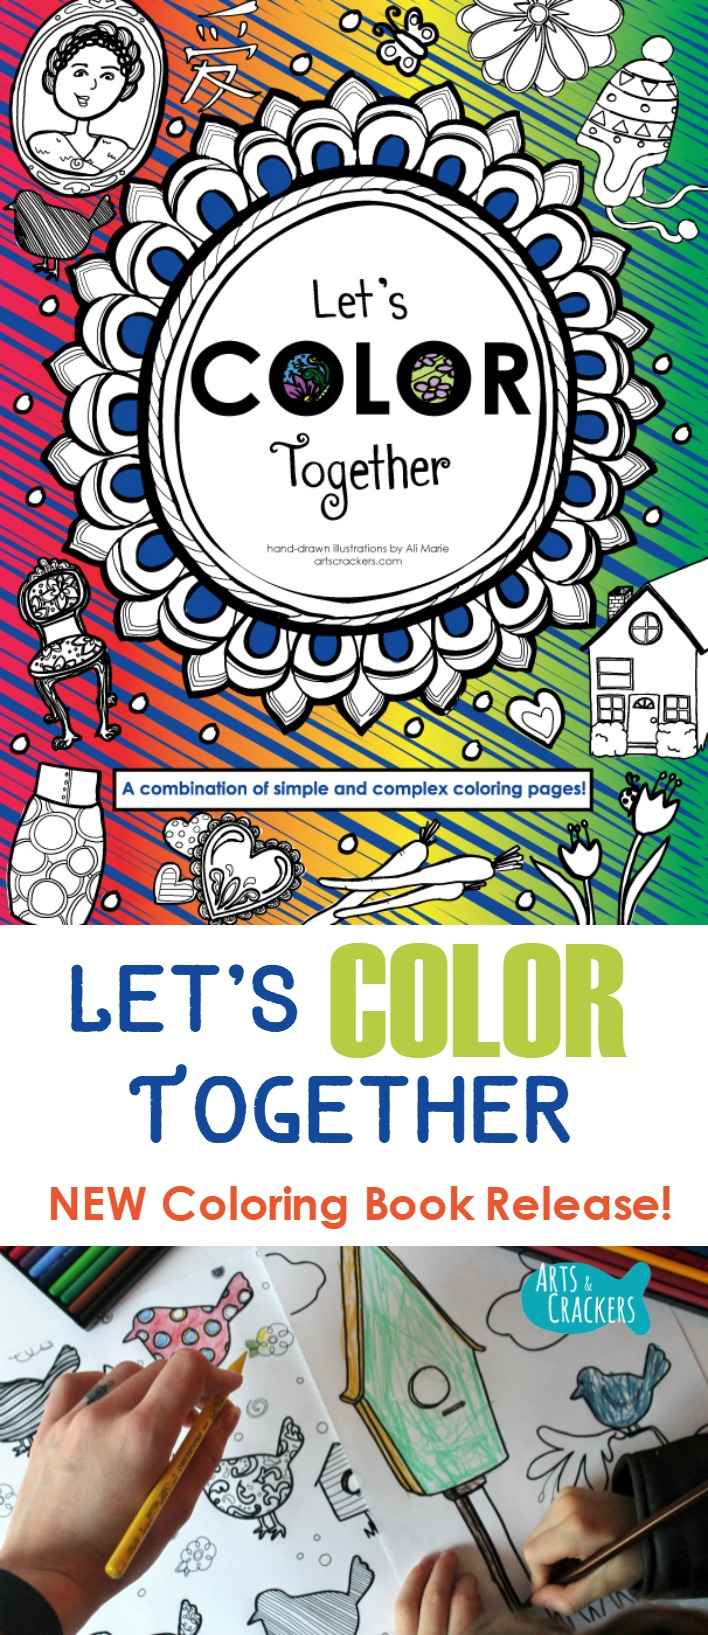 This New Coloring Book Release Lets Color Together Is Just The Holiday Gift You